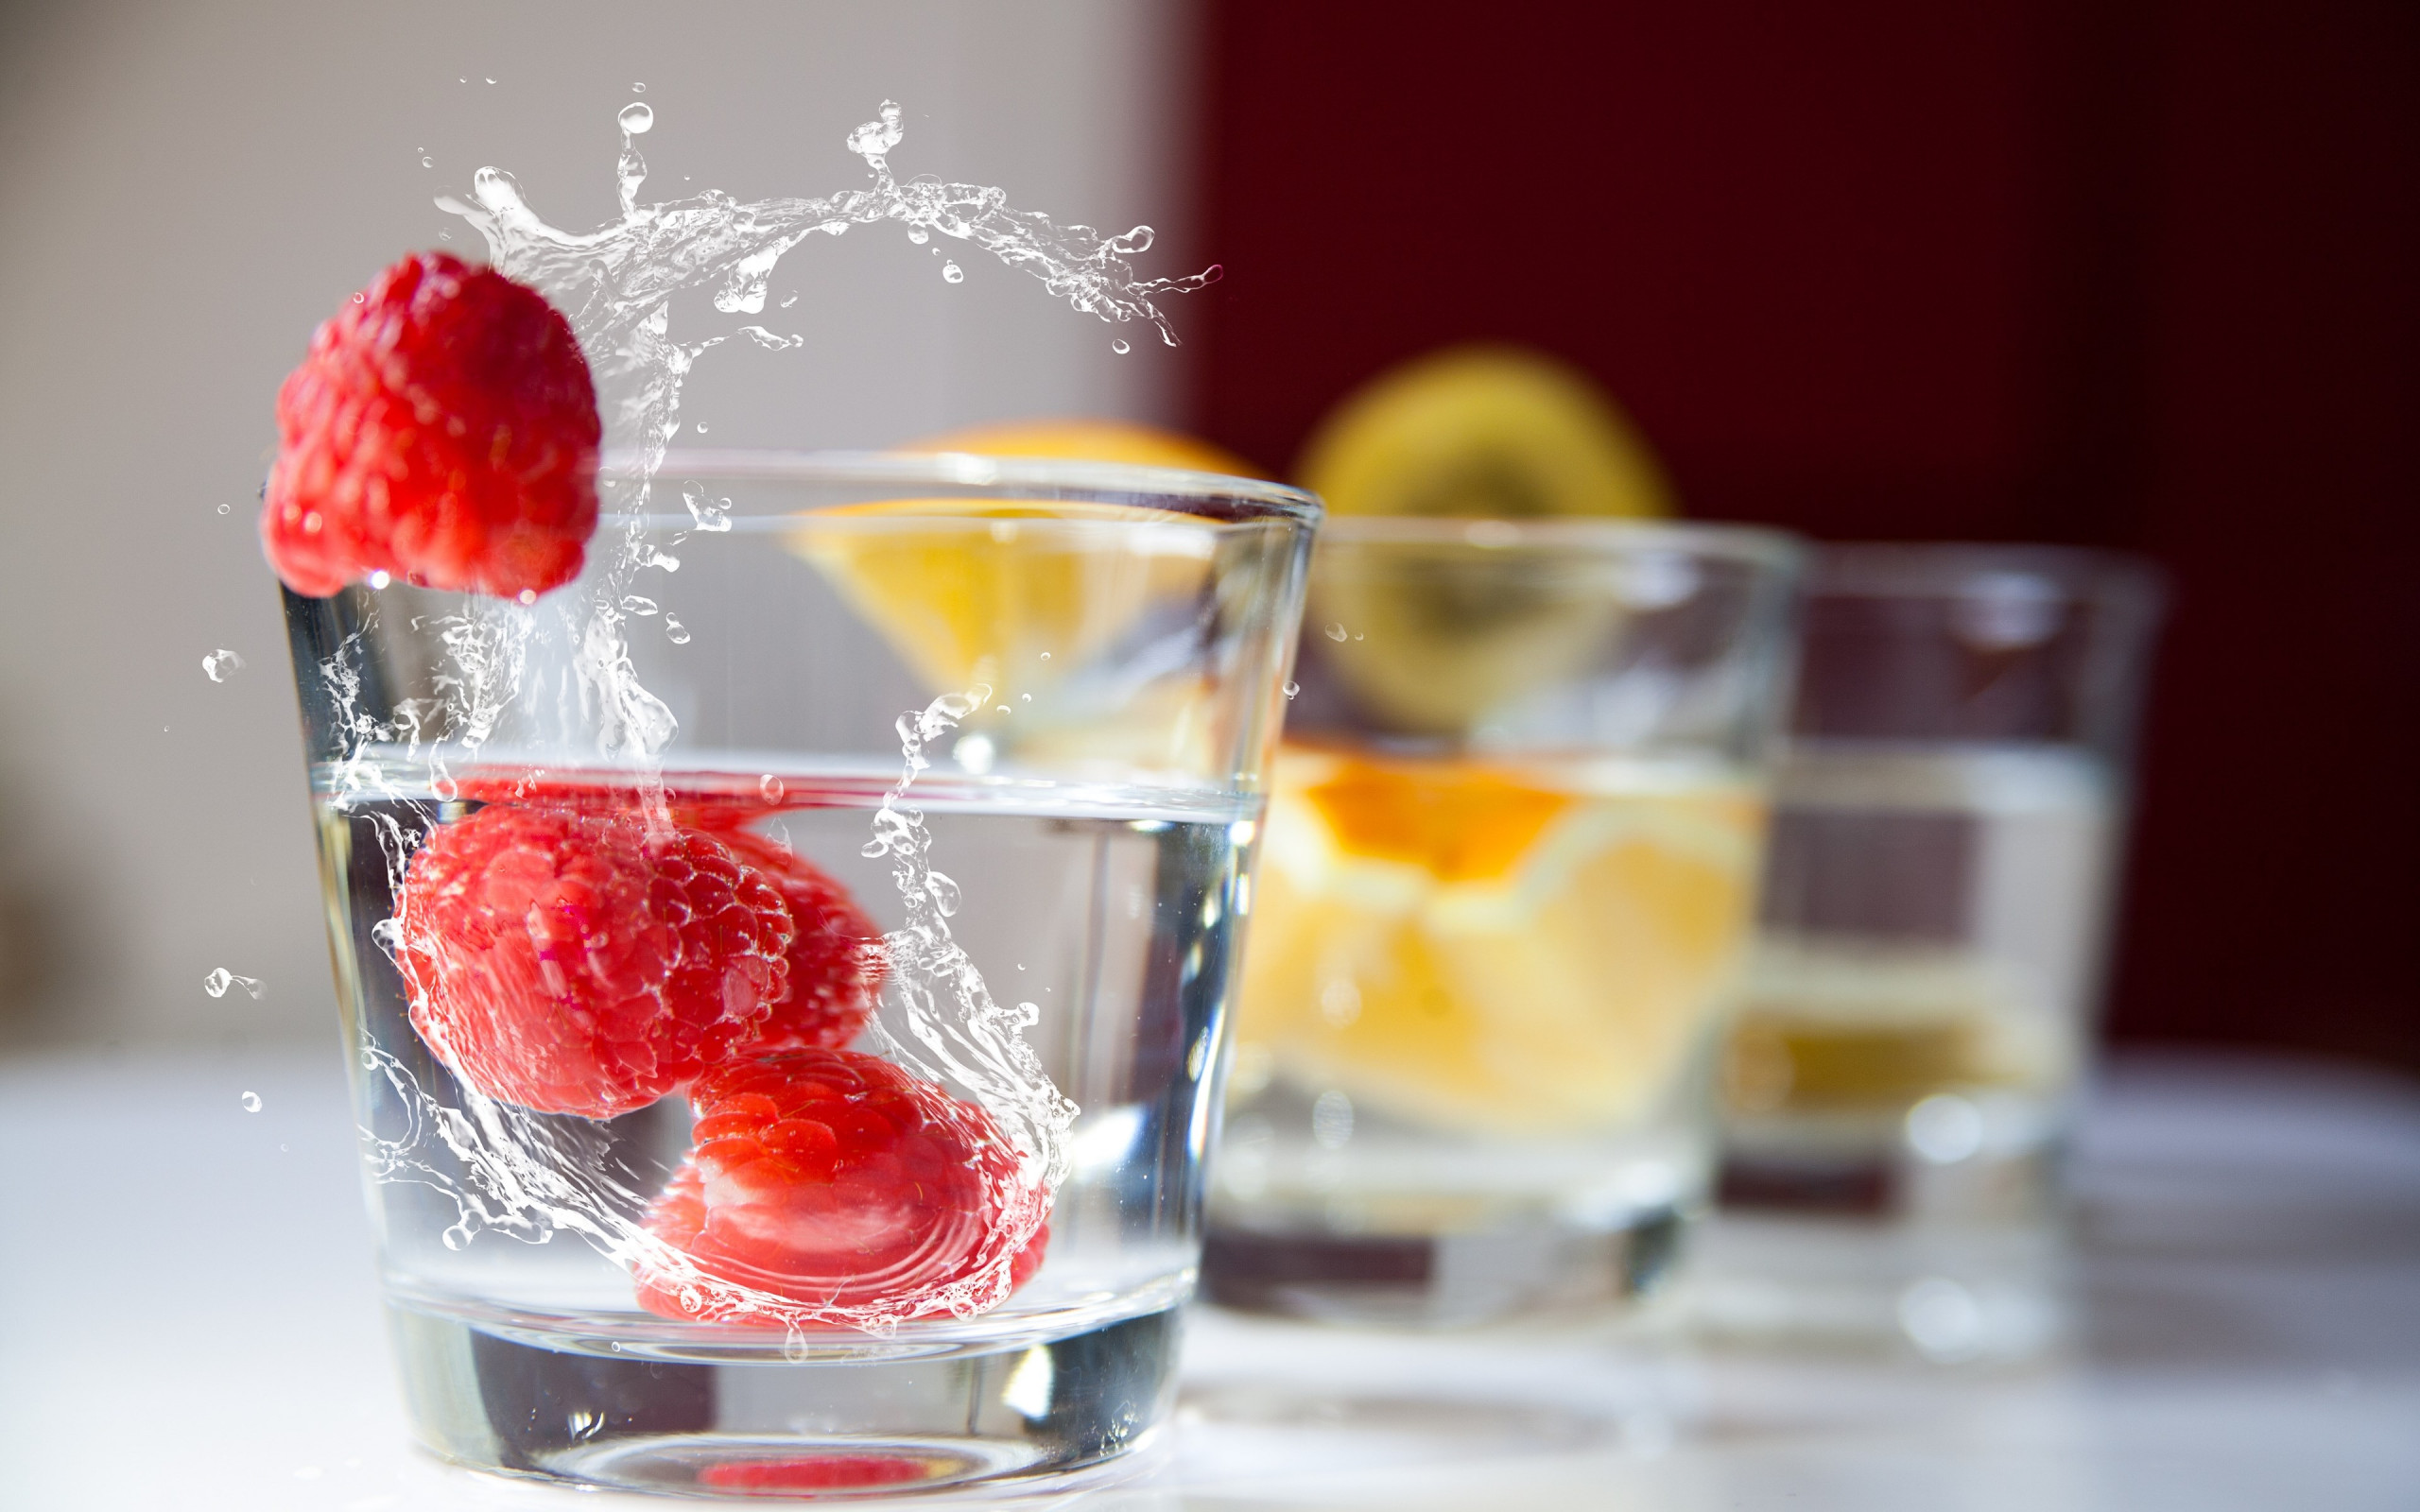 Raspberry and orange drinks | 2560x1600 wallpaper